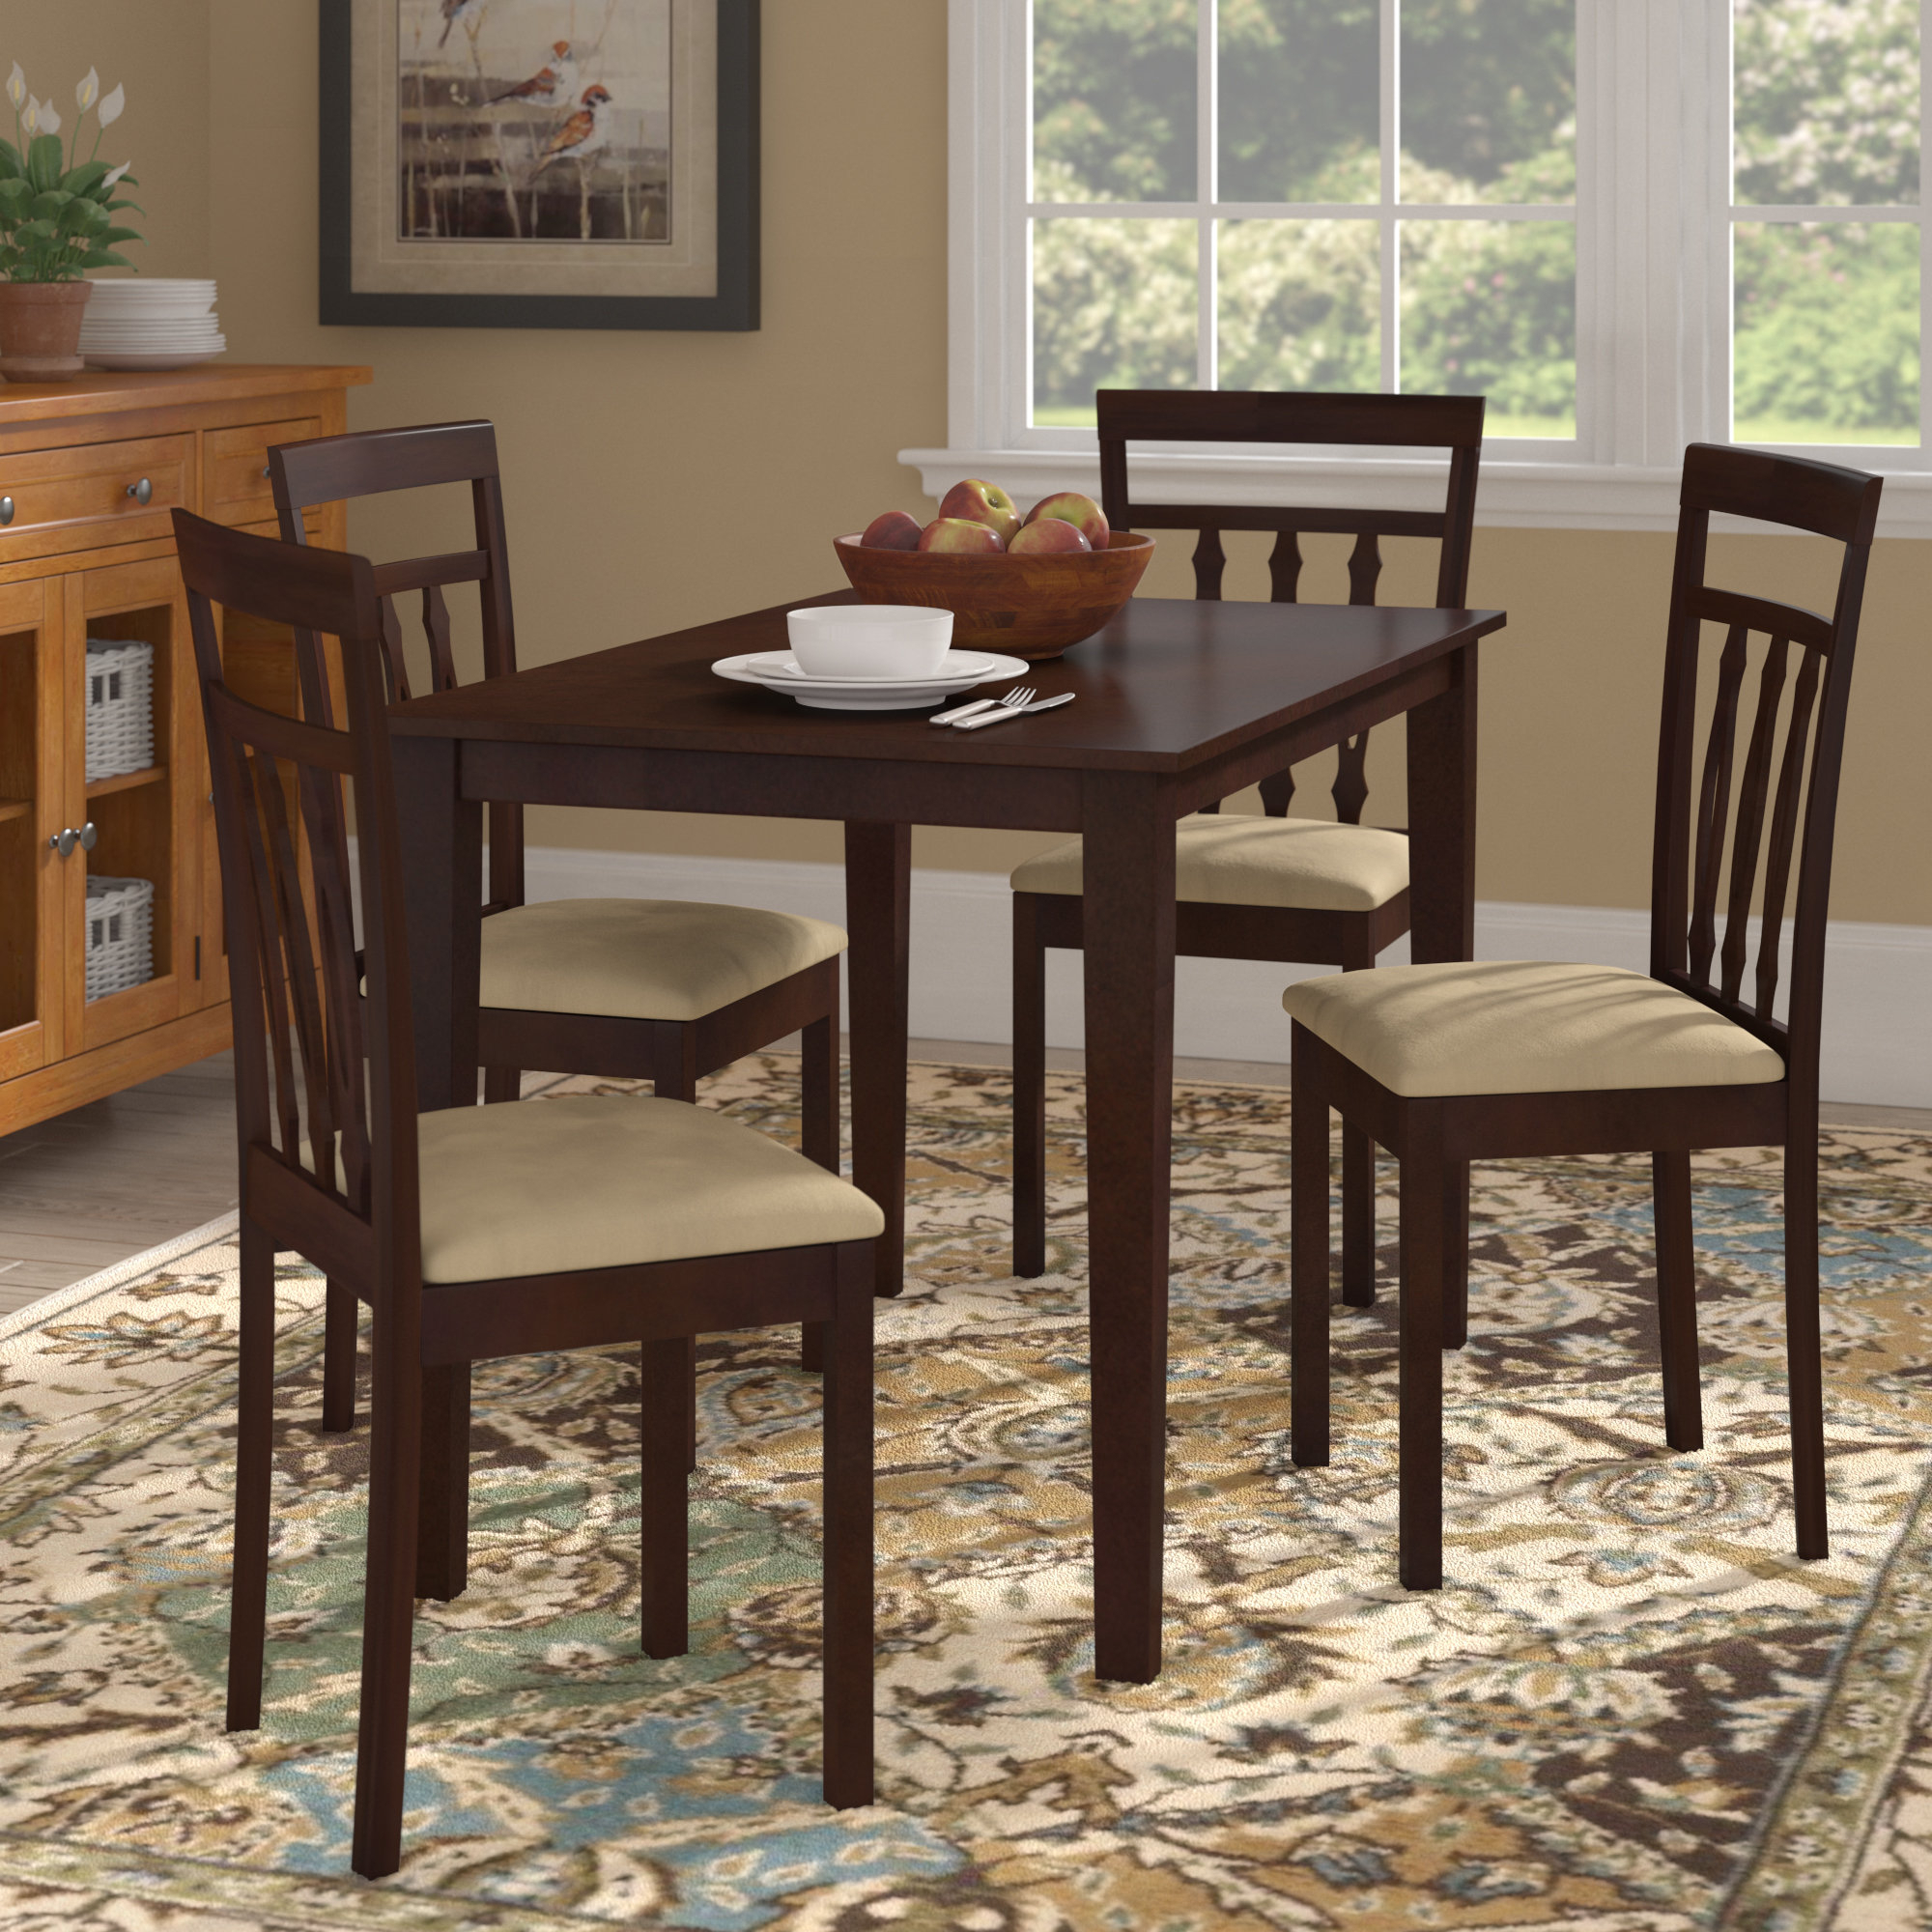 Vivien 5 Piece Dining Set For Most Popular Baillie 3 Piece Dining Sets (View 17 of 20)